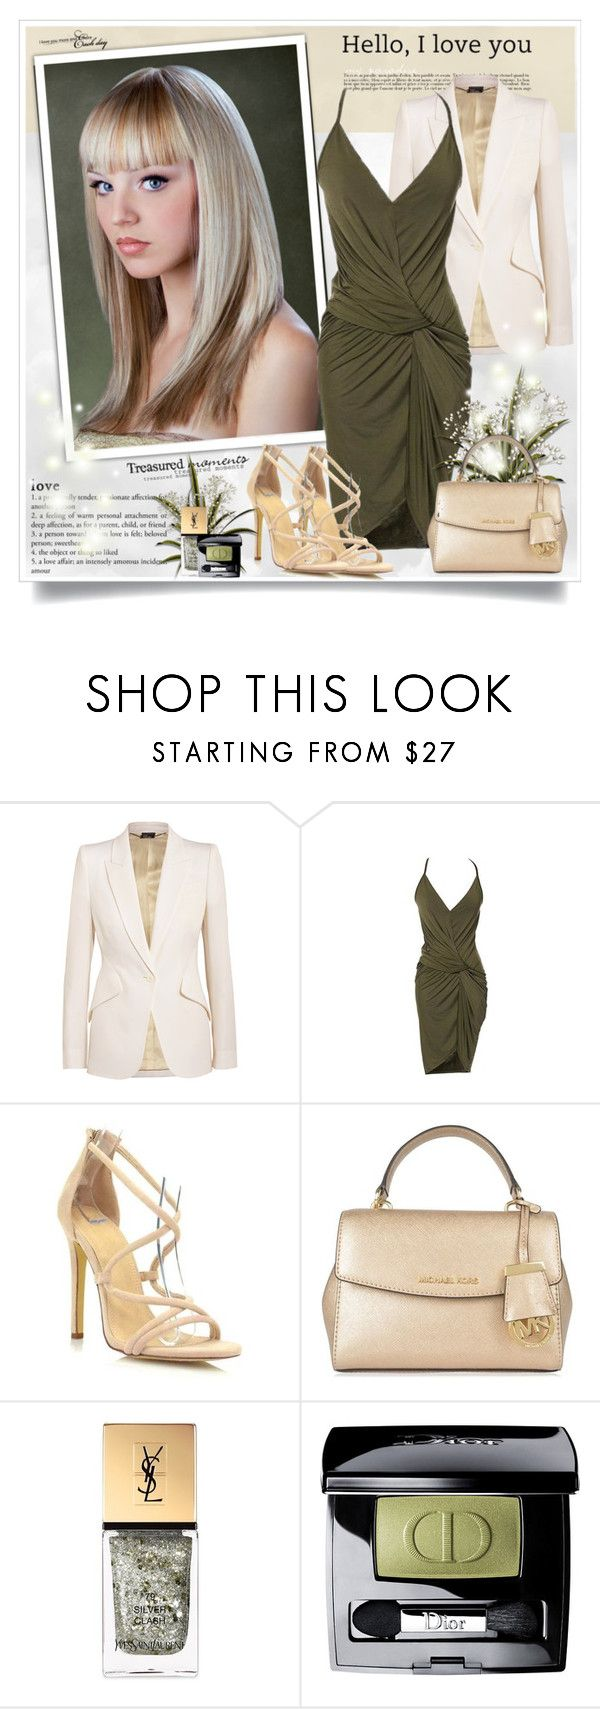 """""""6IXLABEL"""" by sneky ❤ liked on Polyvore featuring Alexander McQueen, Augusta, MICHAEL Michael Kors, Yves Saint Laurent, Christian Dior and 6ixlabel"""